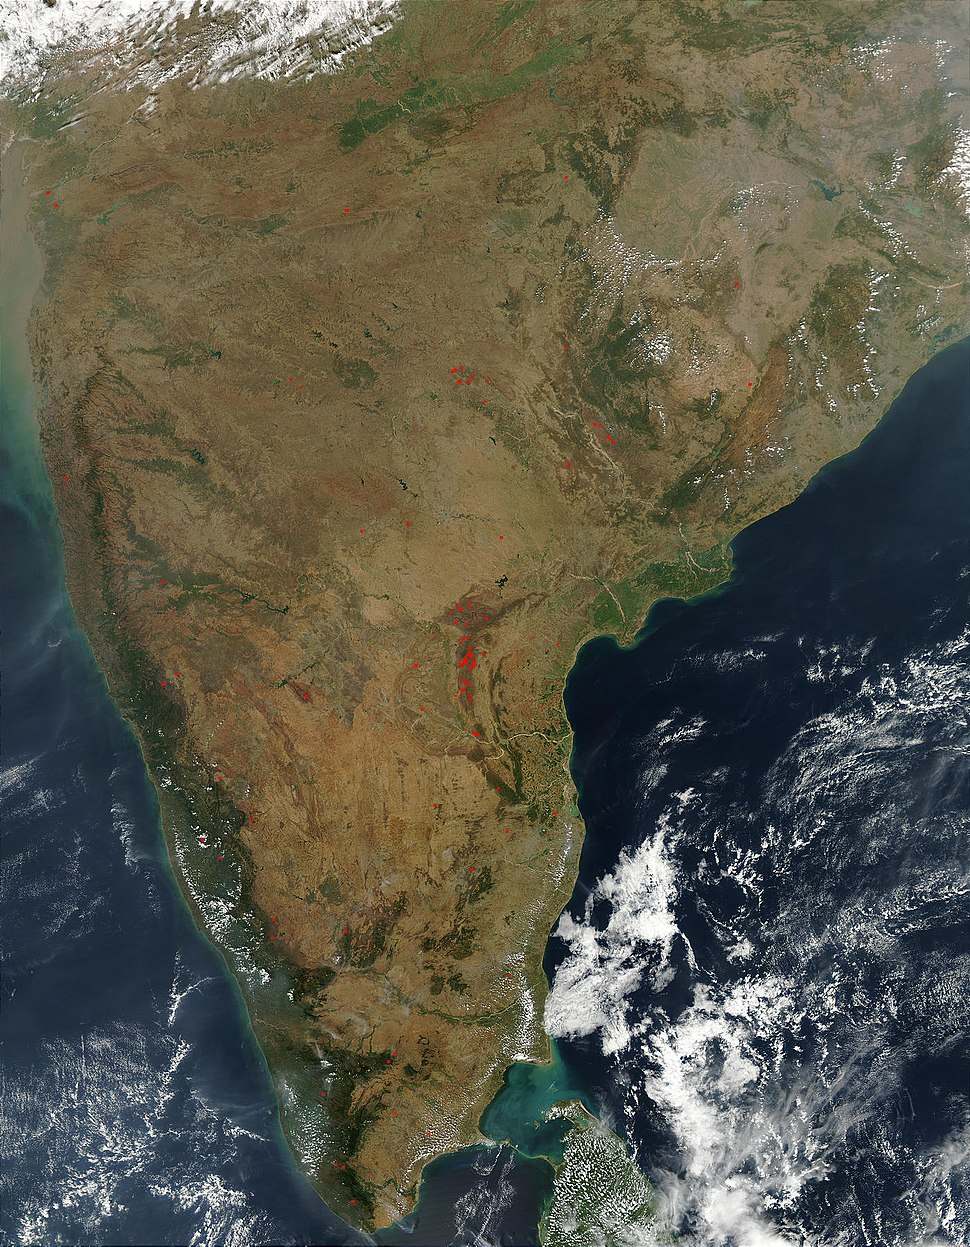 South India satellite